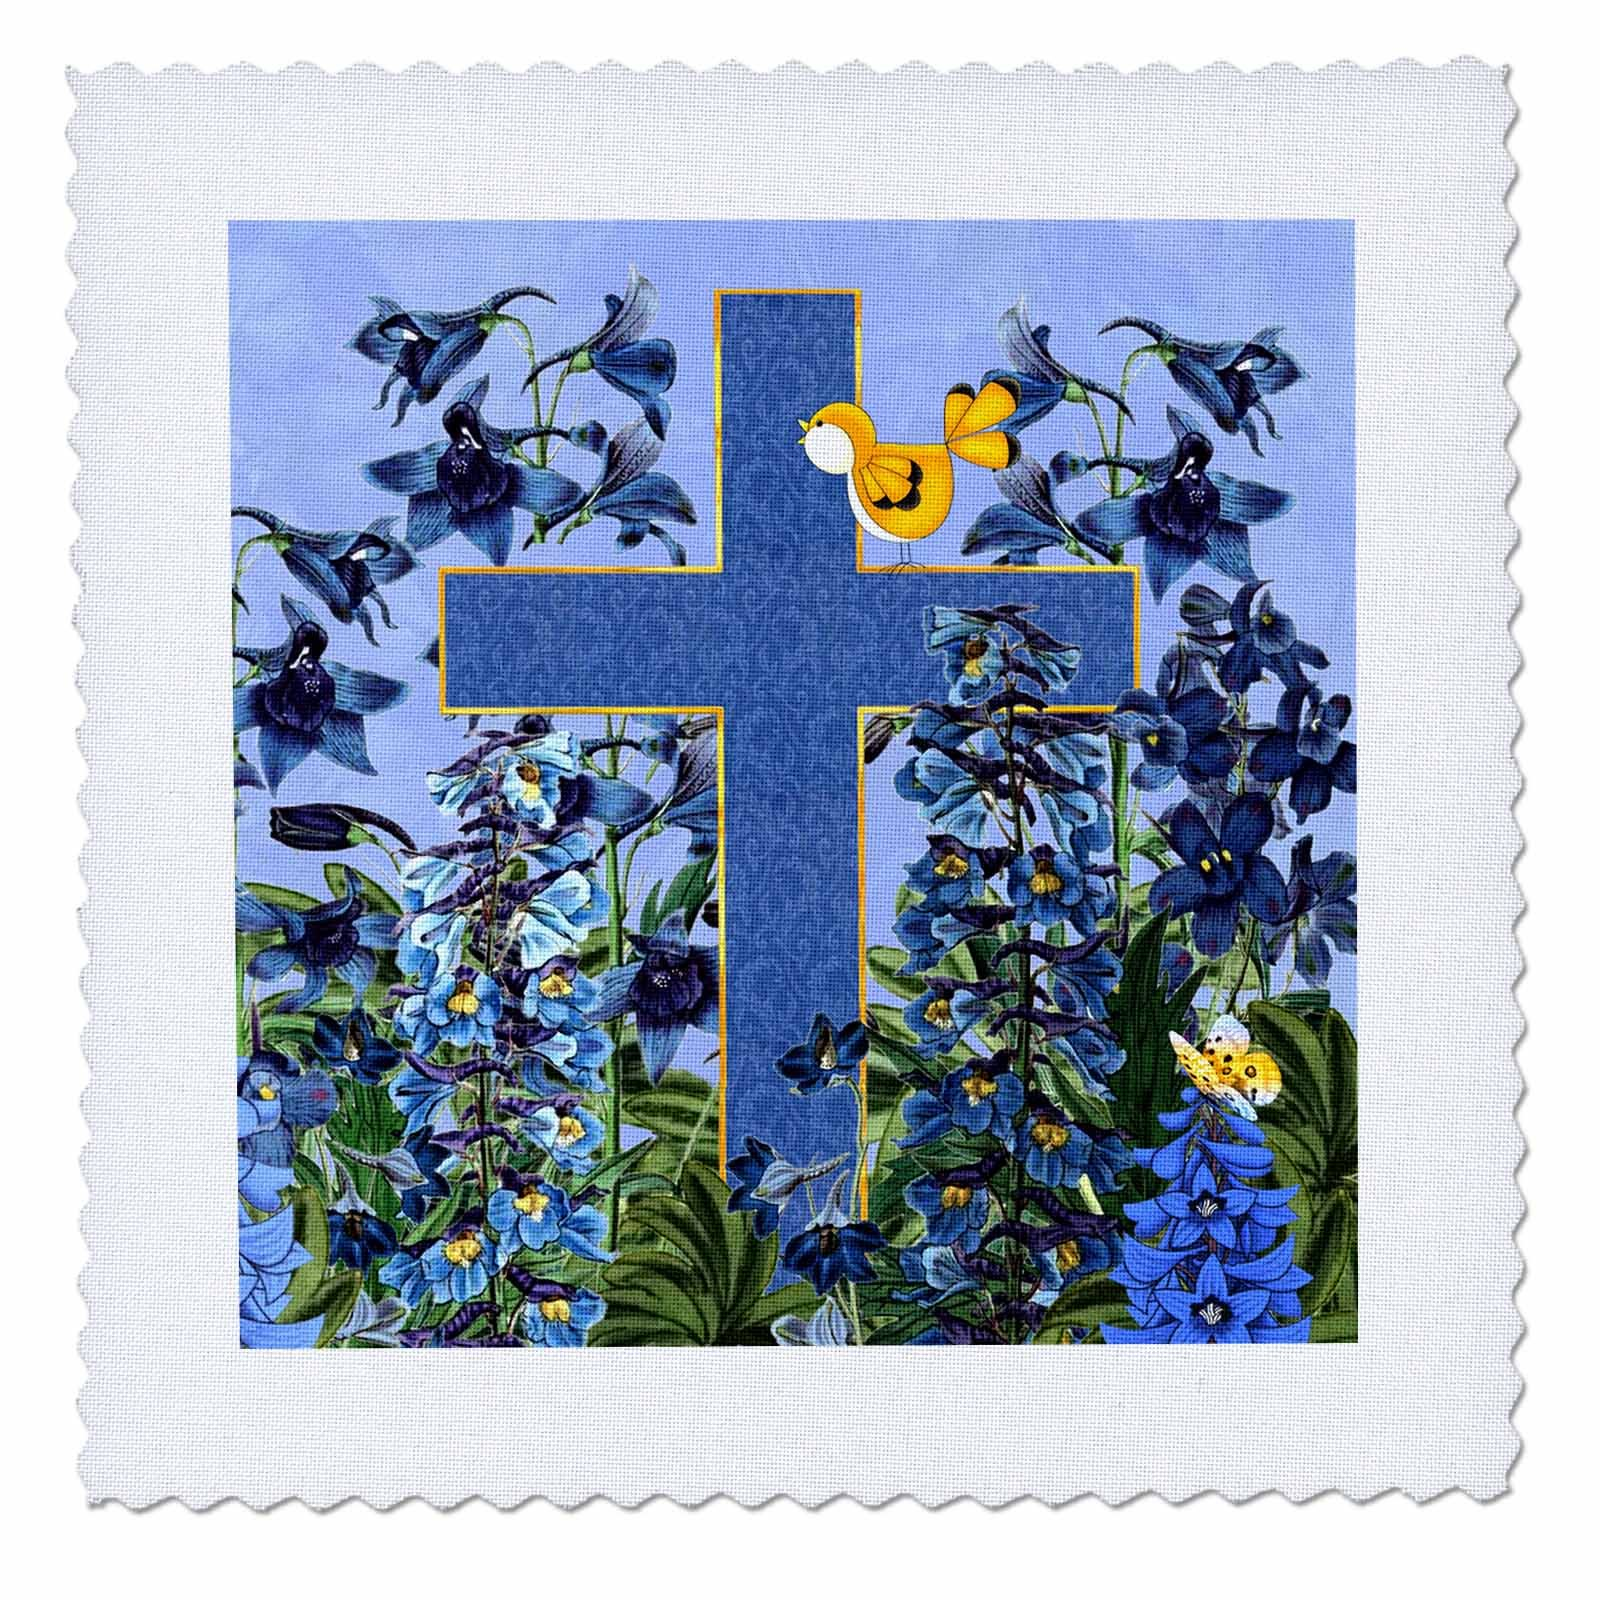 3dRose Doreen Erhardt Inspirational - Larkspur Garden with Yellow Canary and Christian Cross - 22x22 inch quilt square (qs_266787_9) by 3dRose